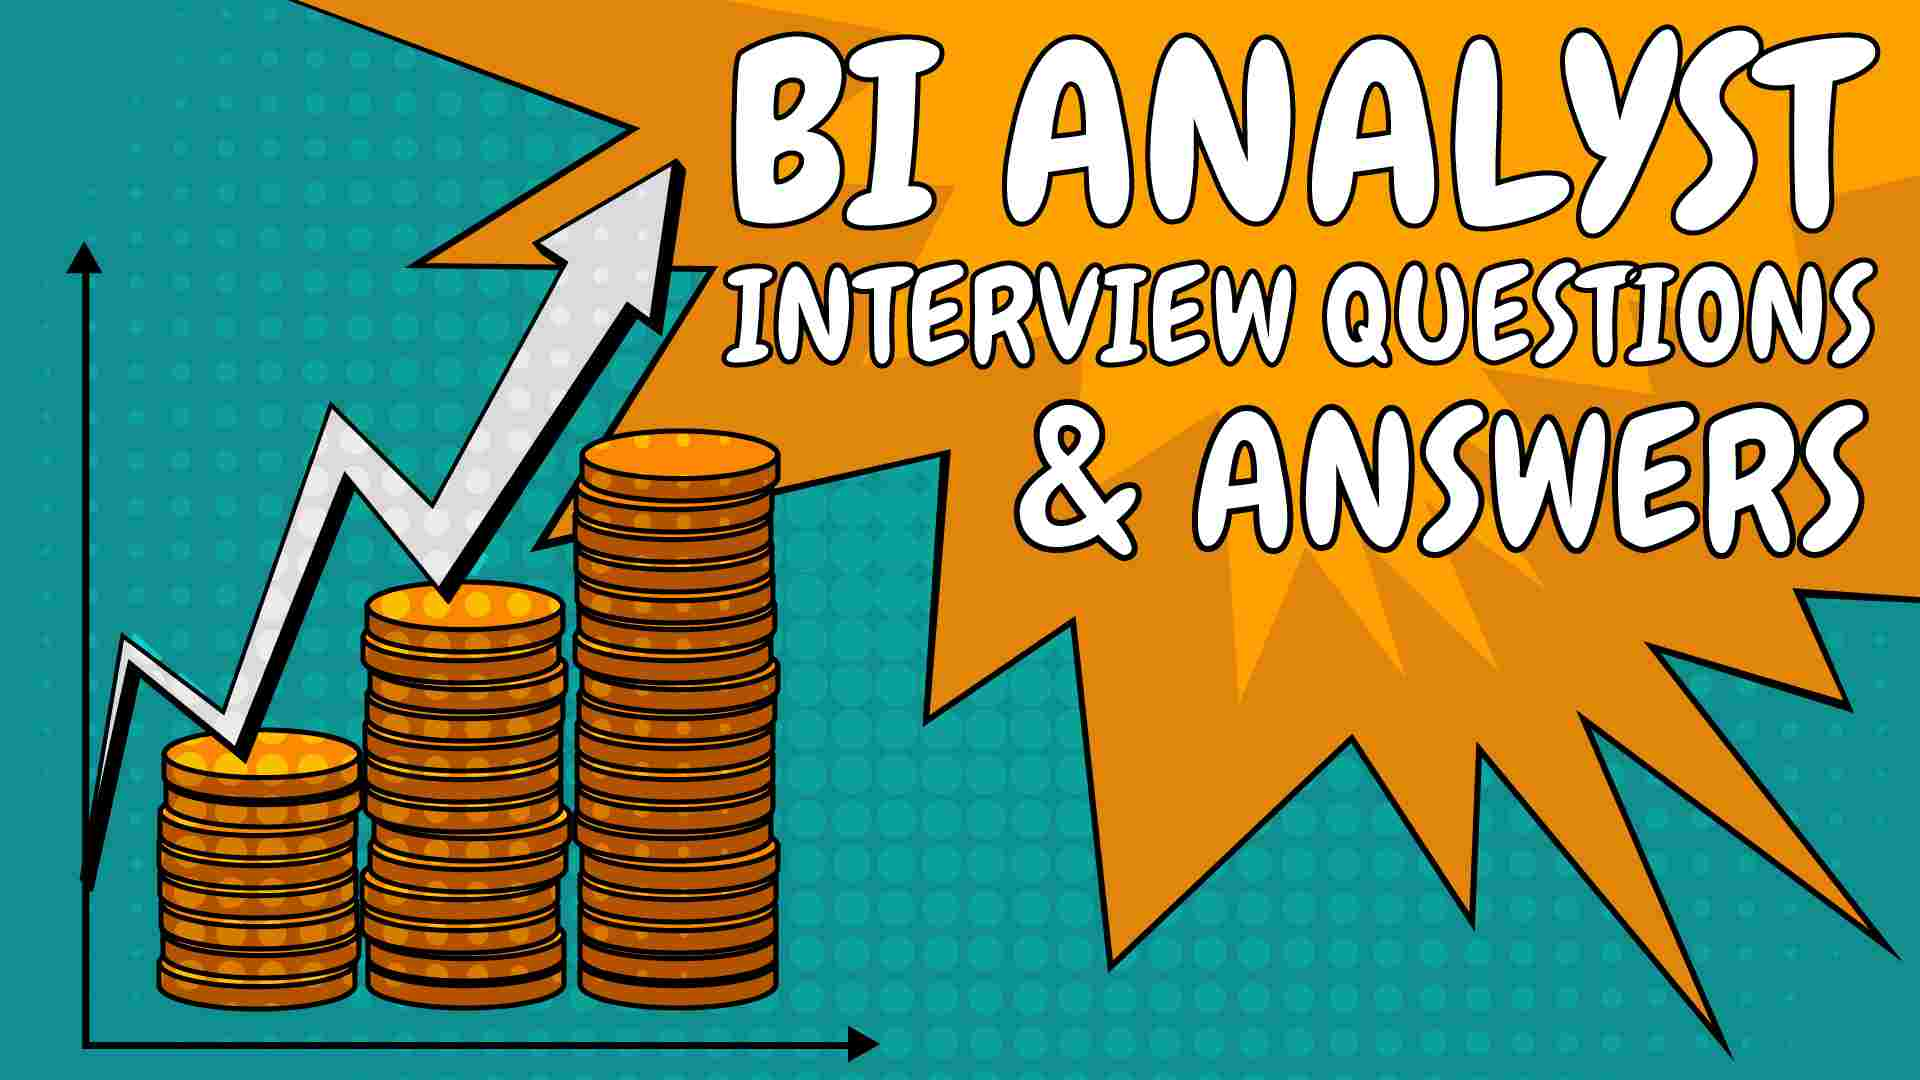 /bi-analyst-interview-questions-and-answers-2020-edition-vo1pb3yhr feature image